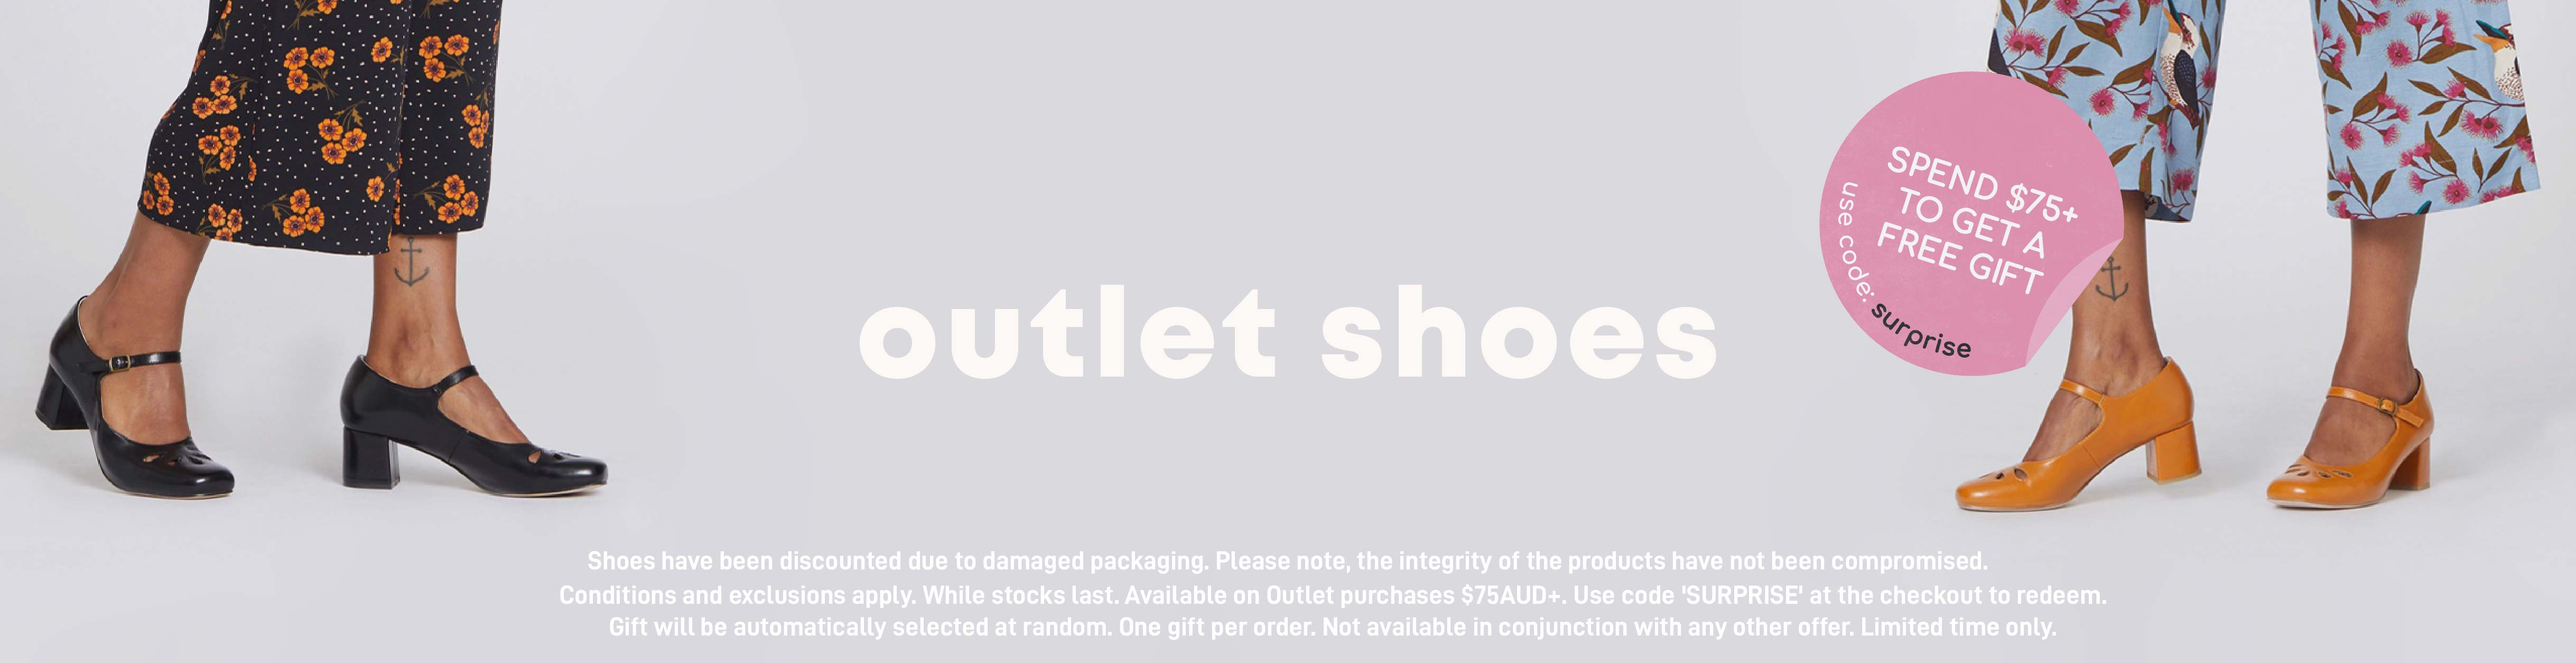 Outlet Shoes